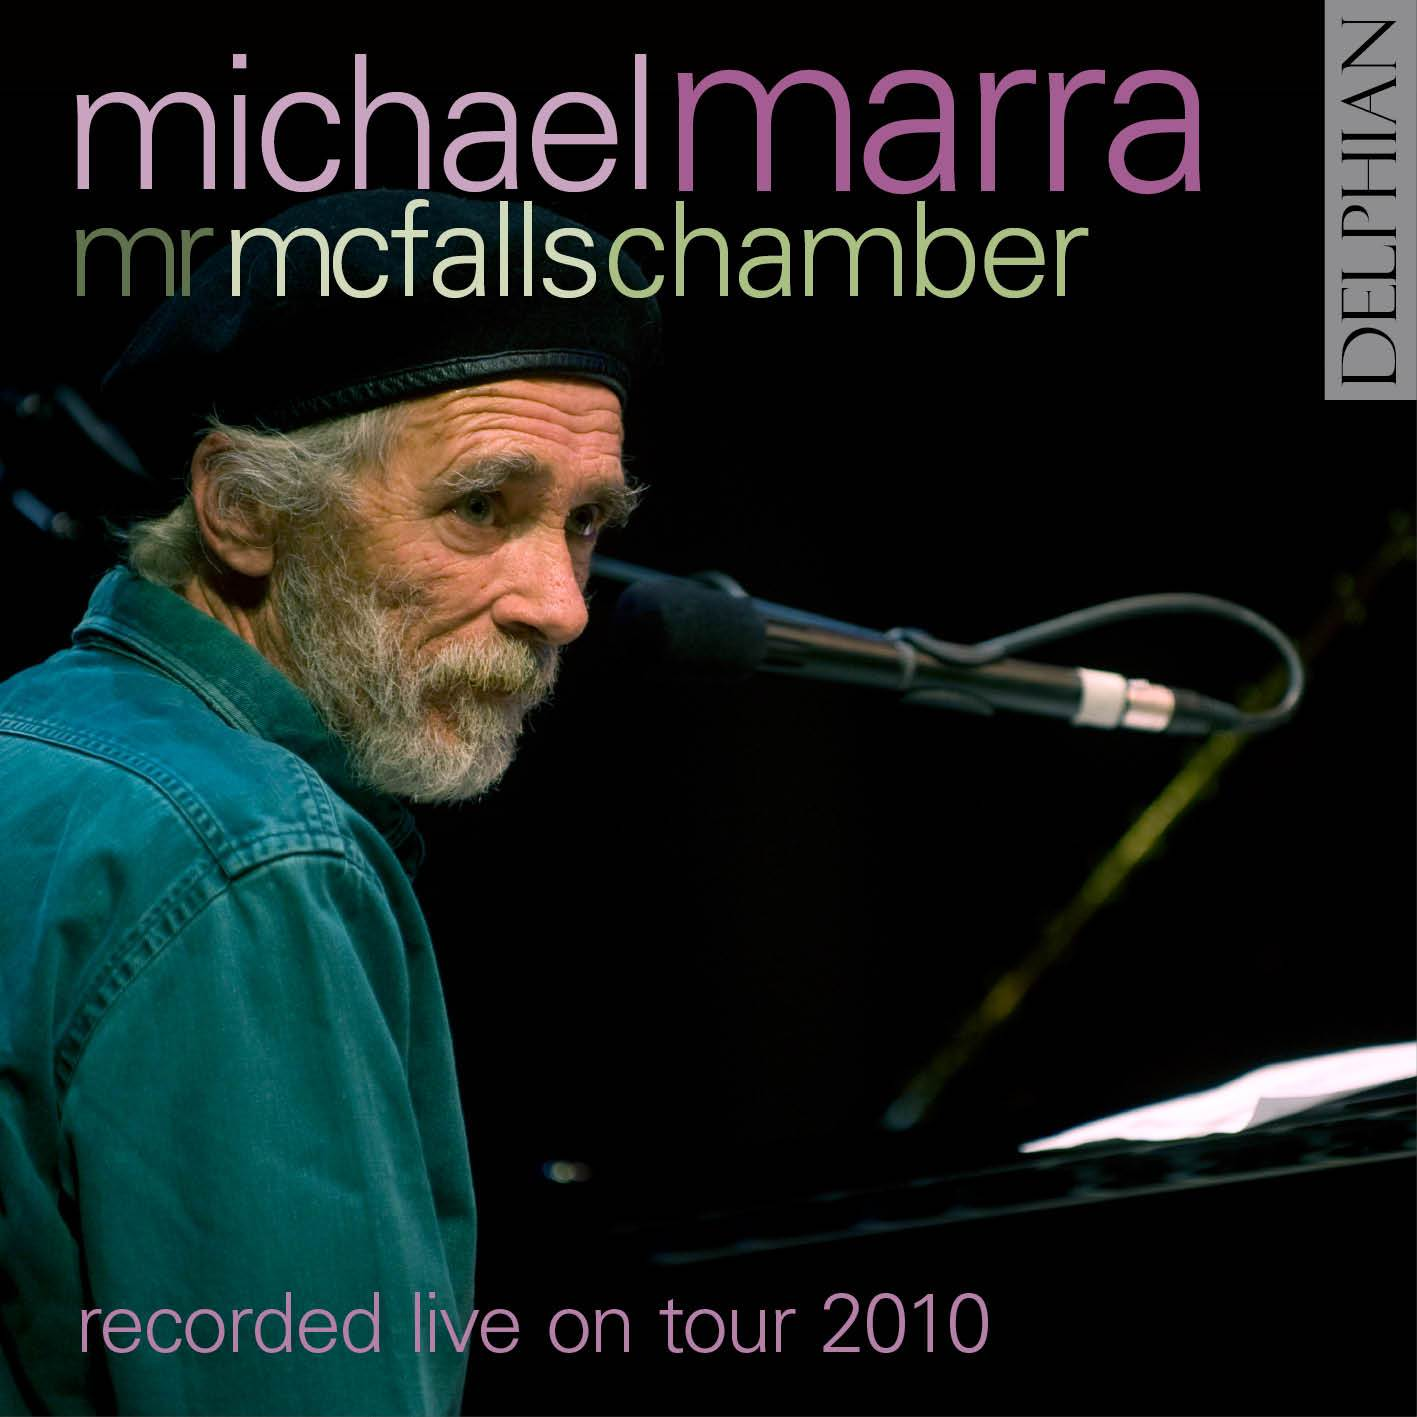 Michael Marra: live on tour 2010 CD Delphian Records